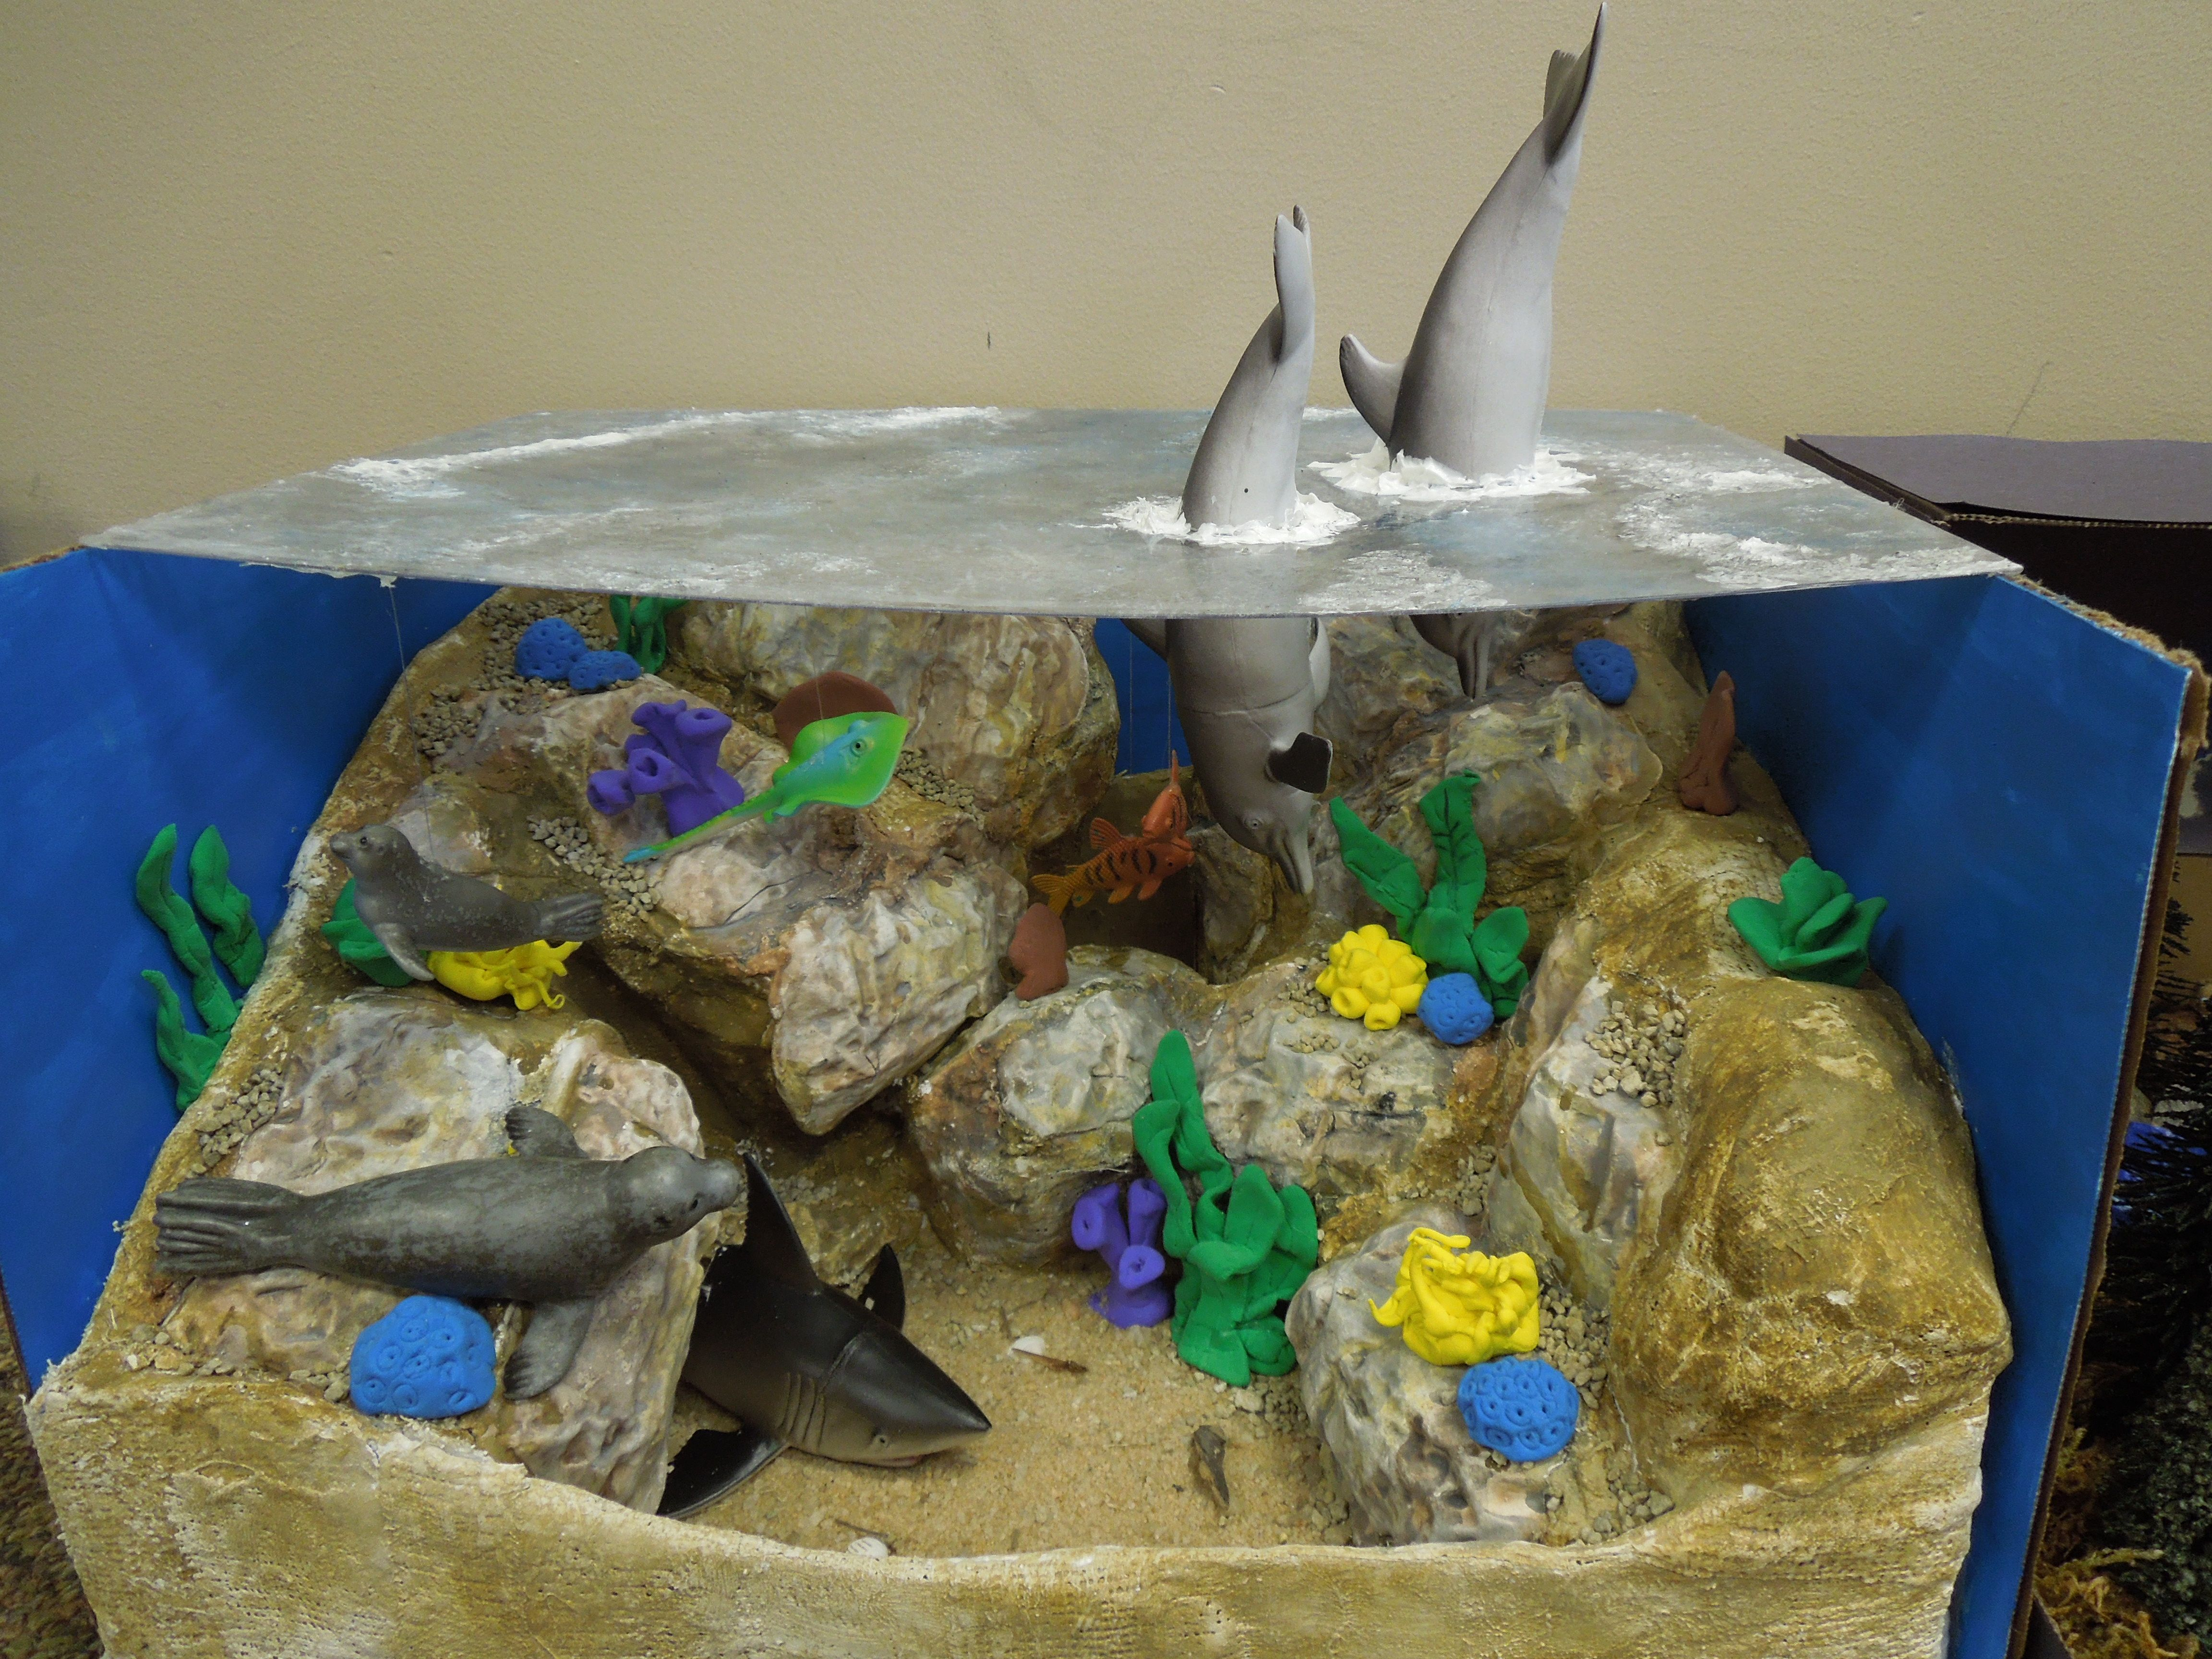 Second Graders Made A Diorama To Show An Animal Habitat